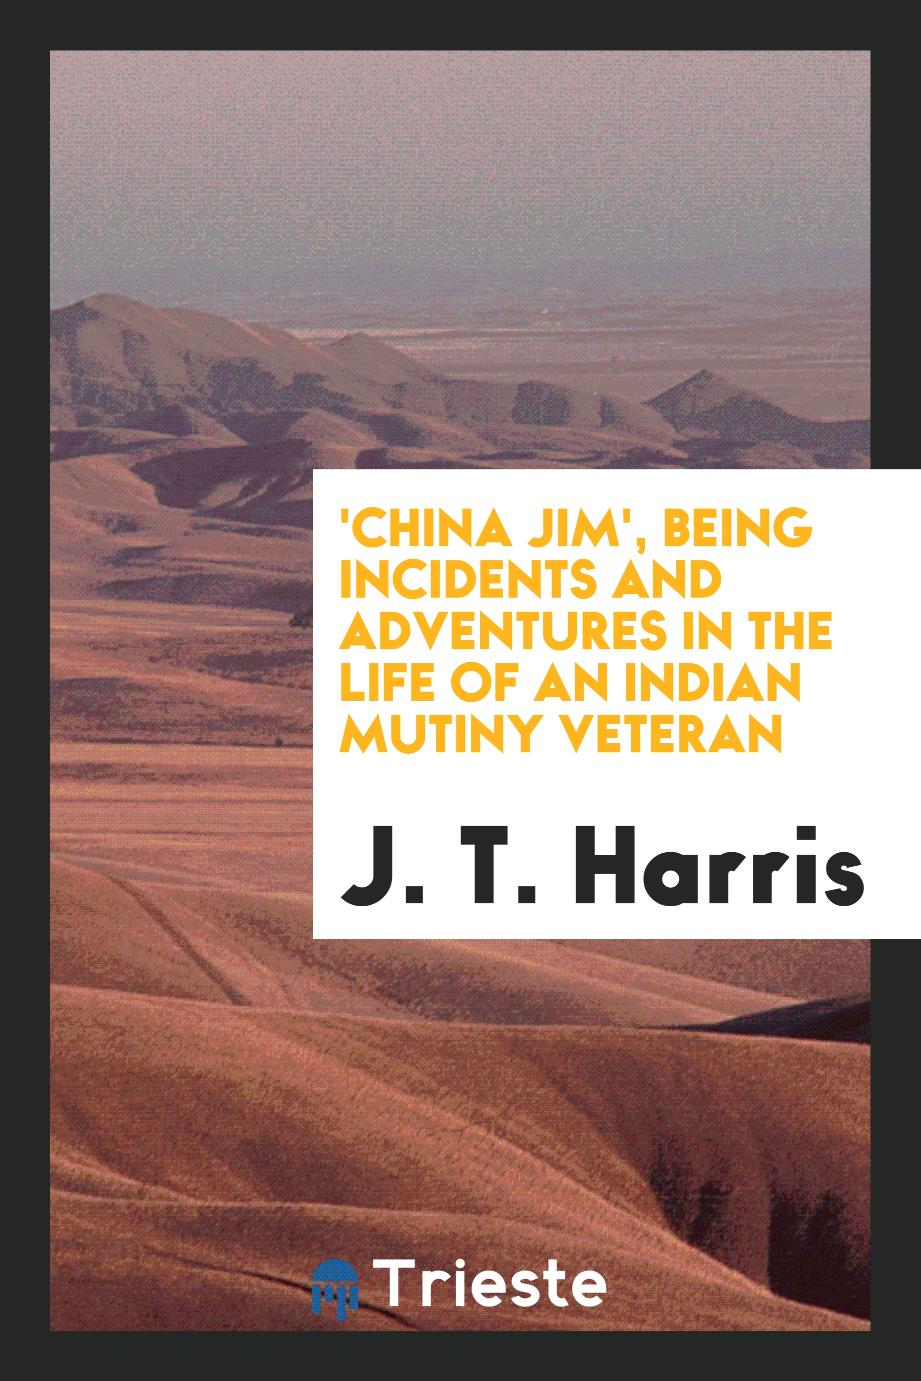 'China Jim', Being Incidents and Adventures in the Life of an Indian Mutiny Veteran